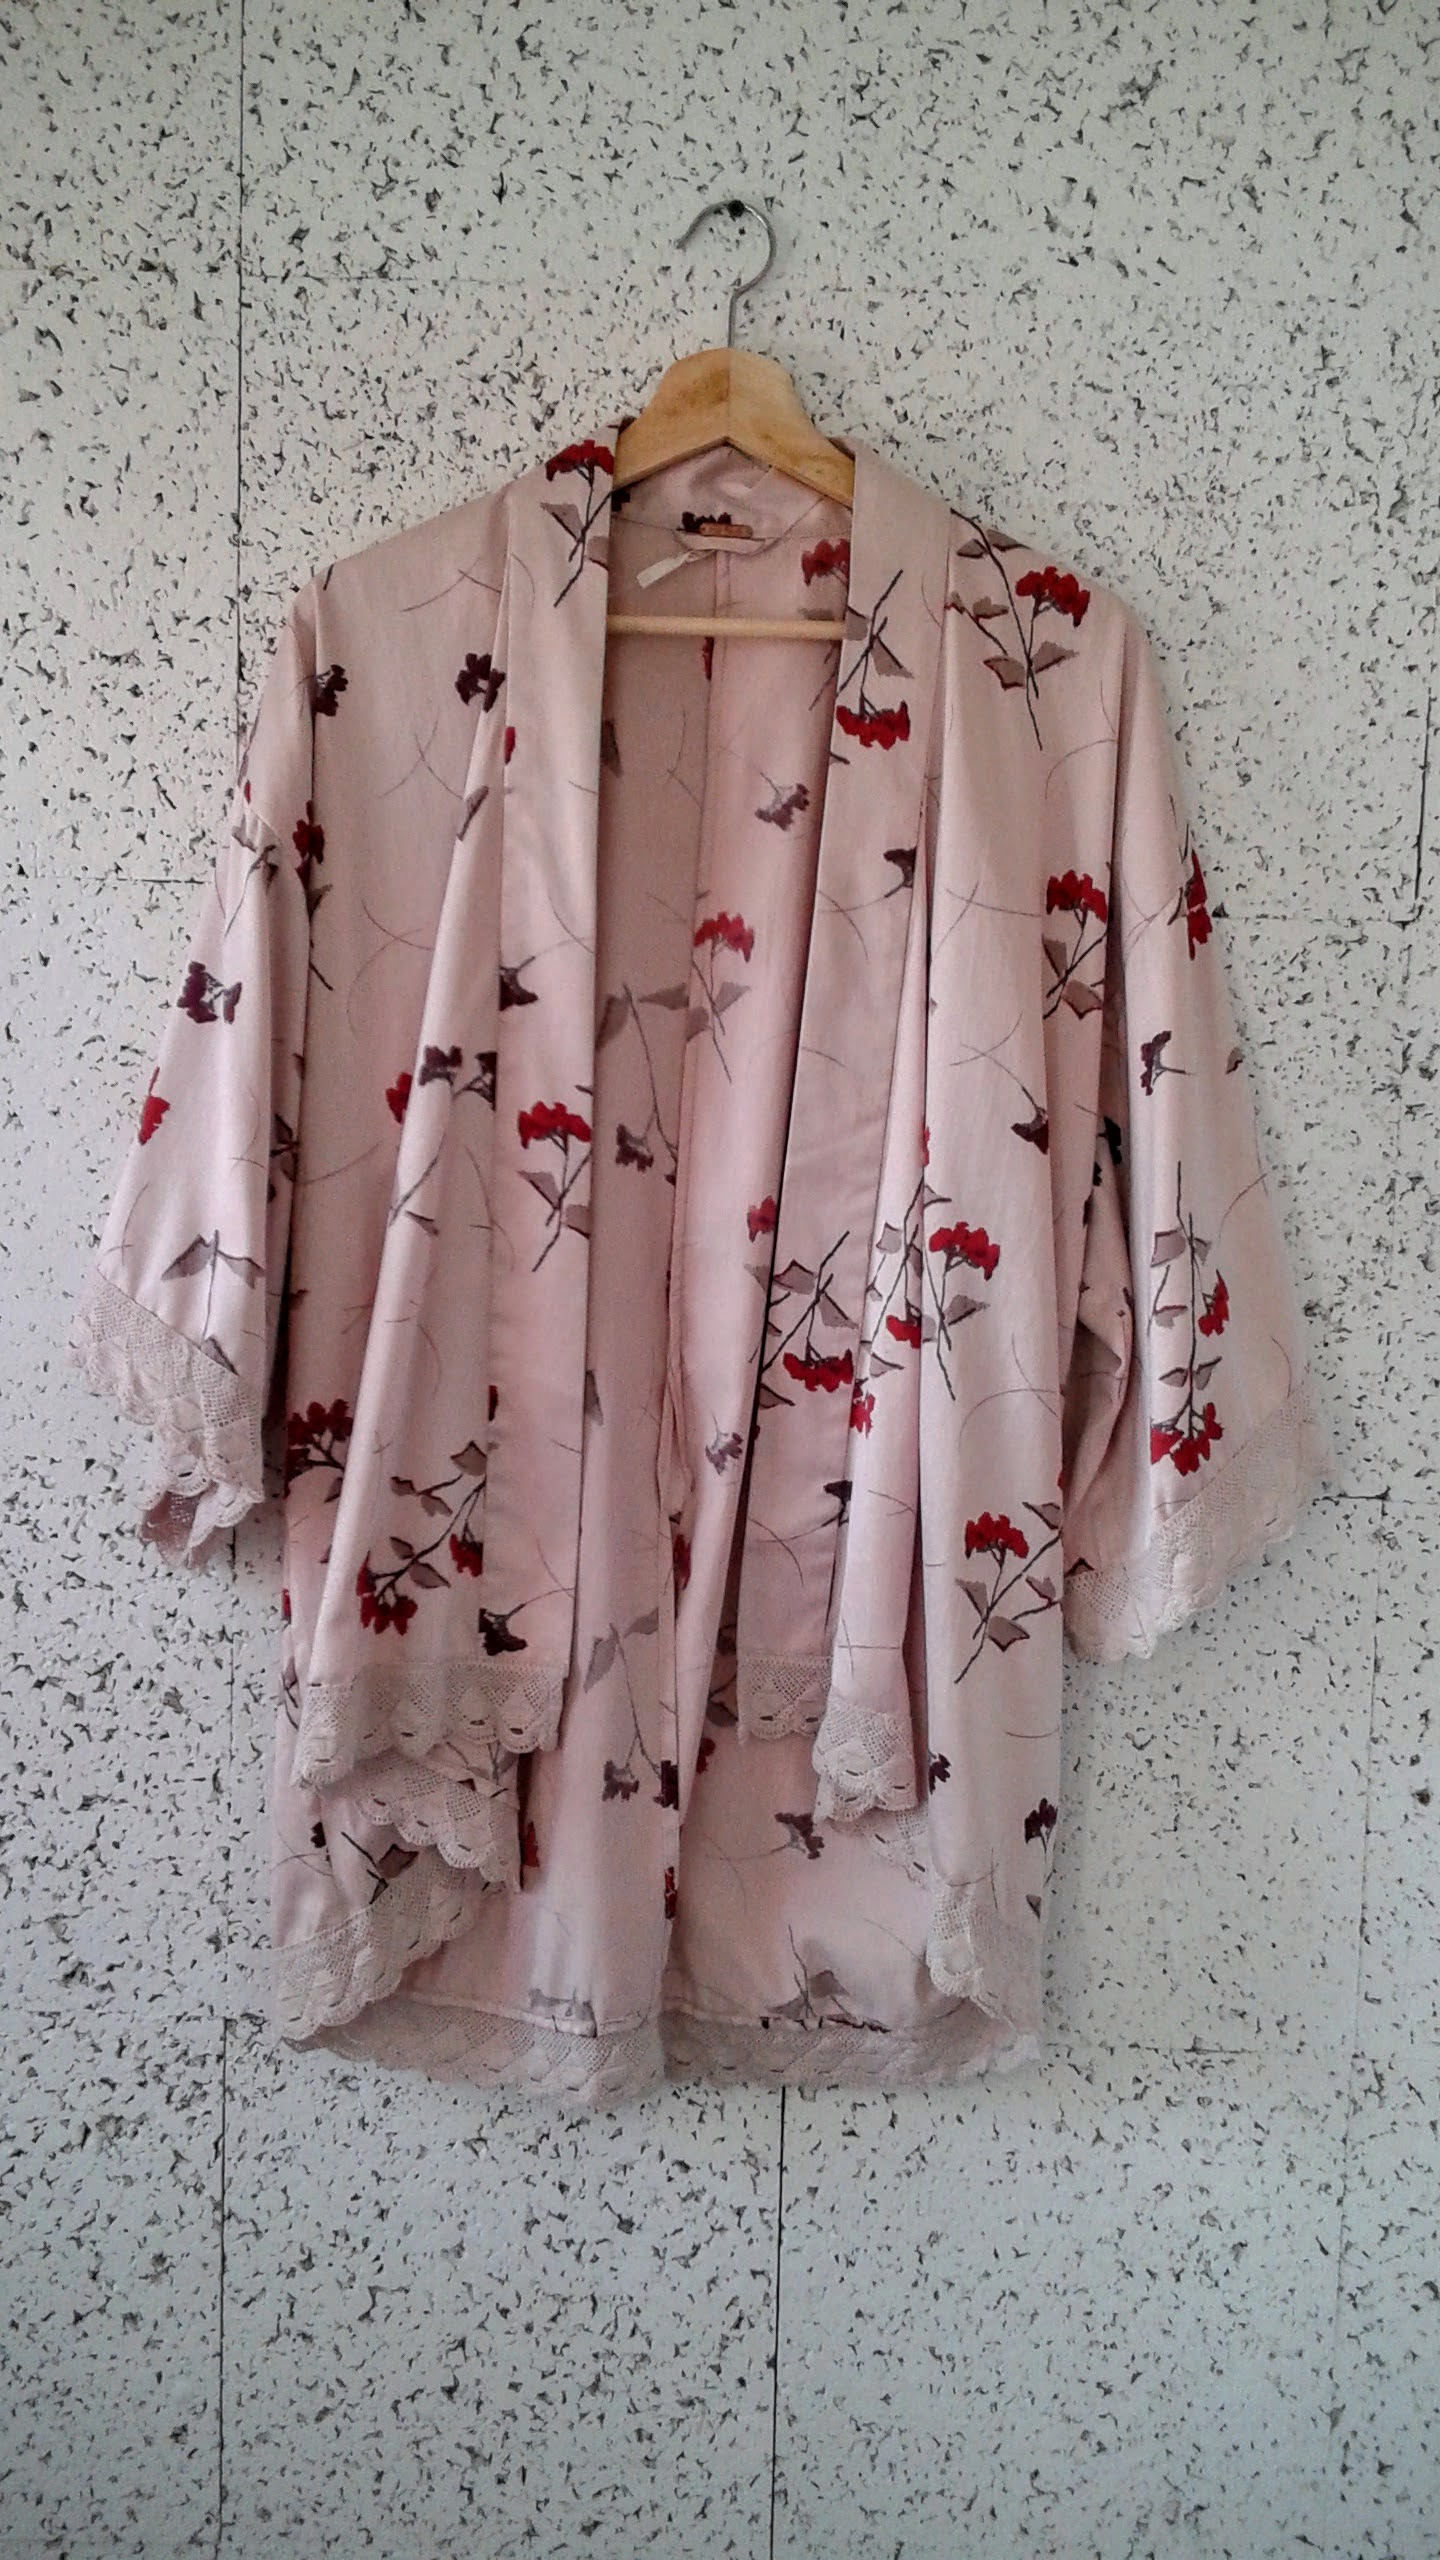 Free People  top; Size S, $36